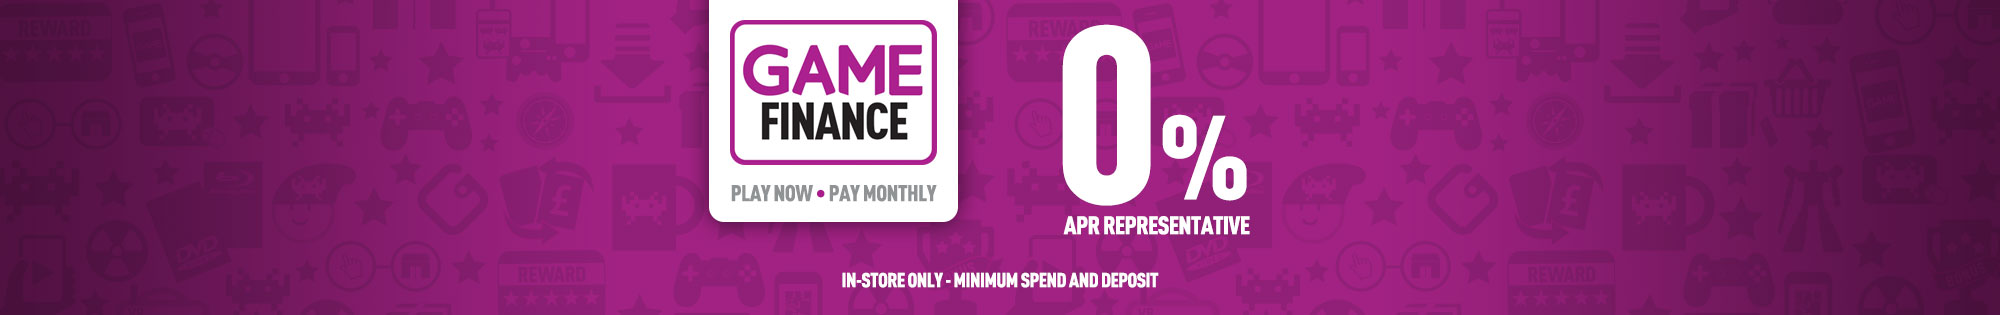 Linited time only Finance offer 0% APR- Buy Now at GAME.co.uk!